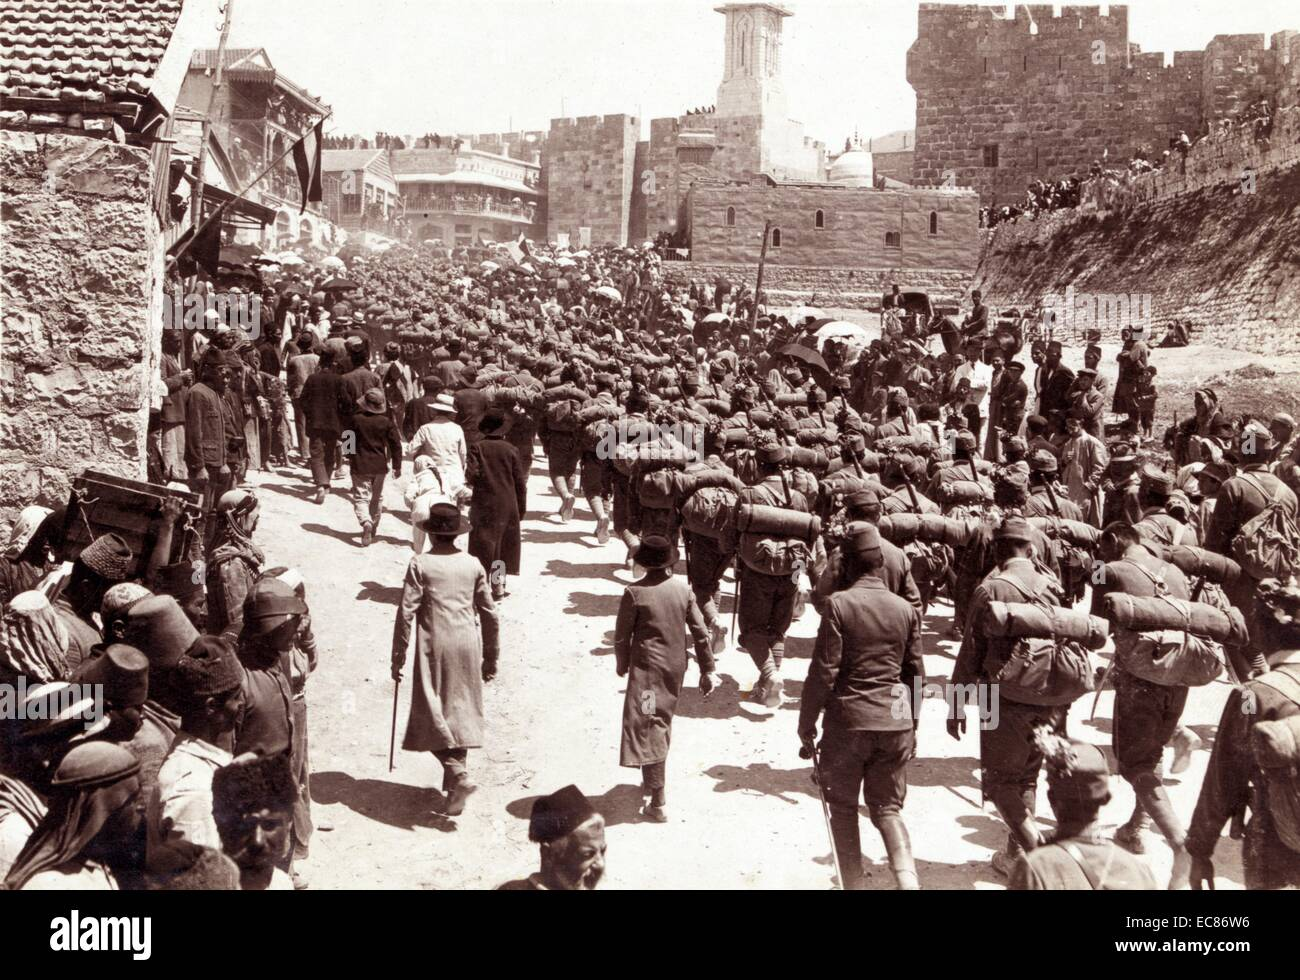 Photograph of Austrian troops marching up Mt Zion, Jerusalem. Dated 1916 - Stock Image